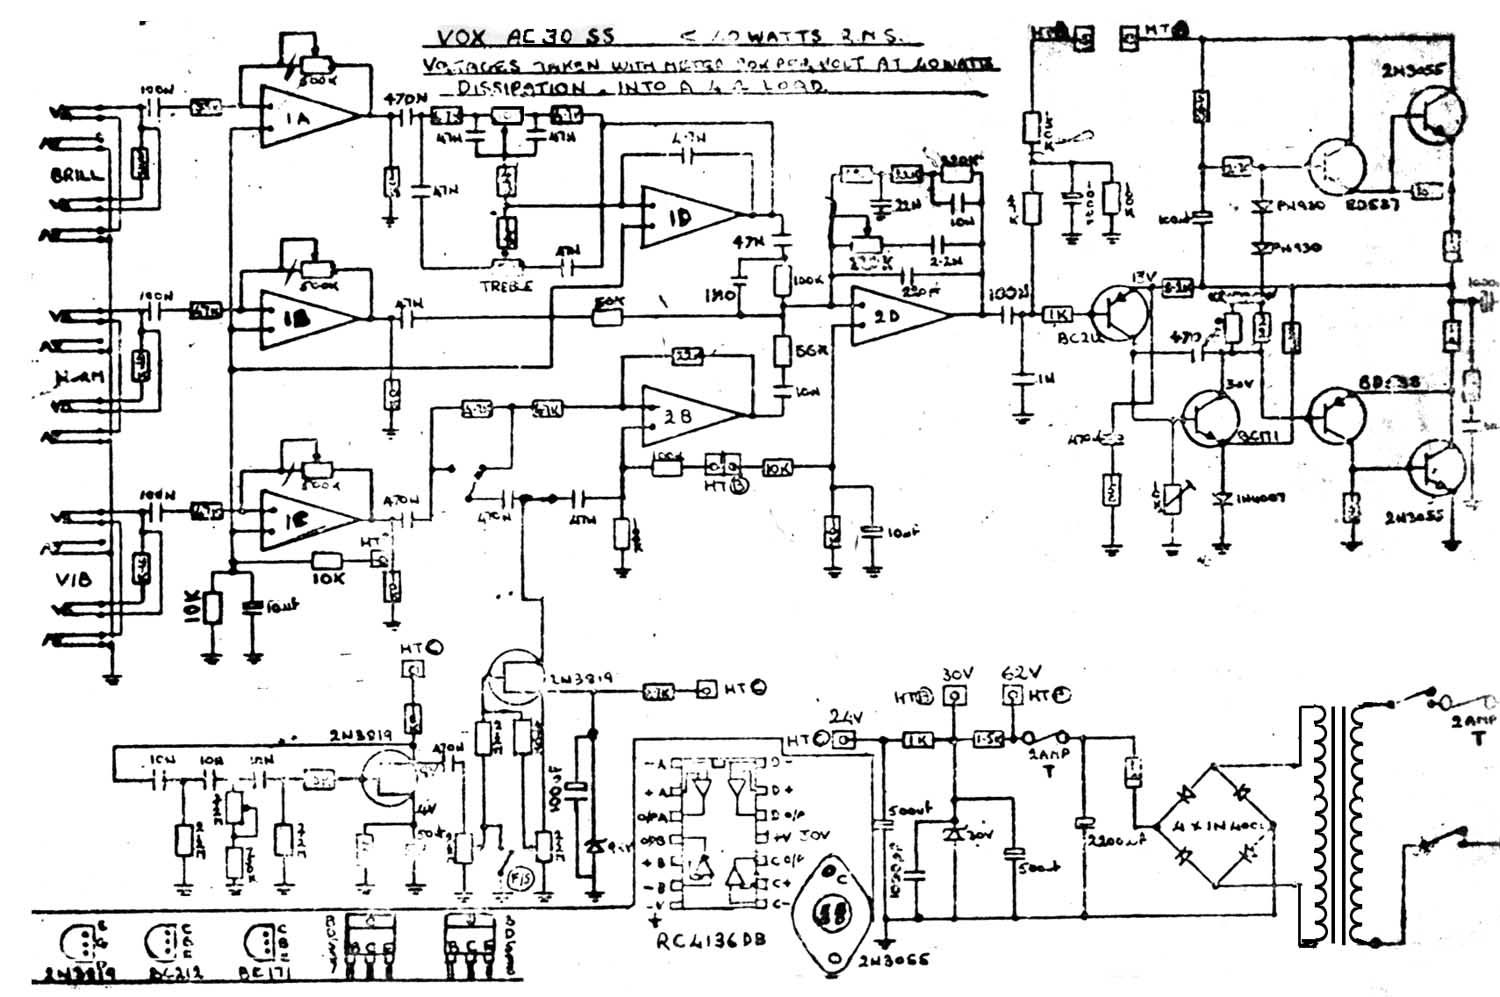 Vox Vintage Circuit Diagrams Electrical Schematic Drawings Get Free Image About Wiring Diagram Download